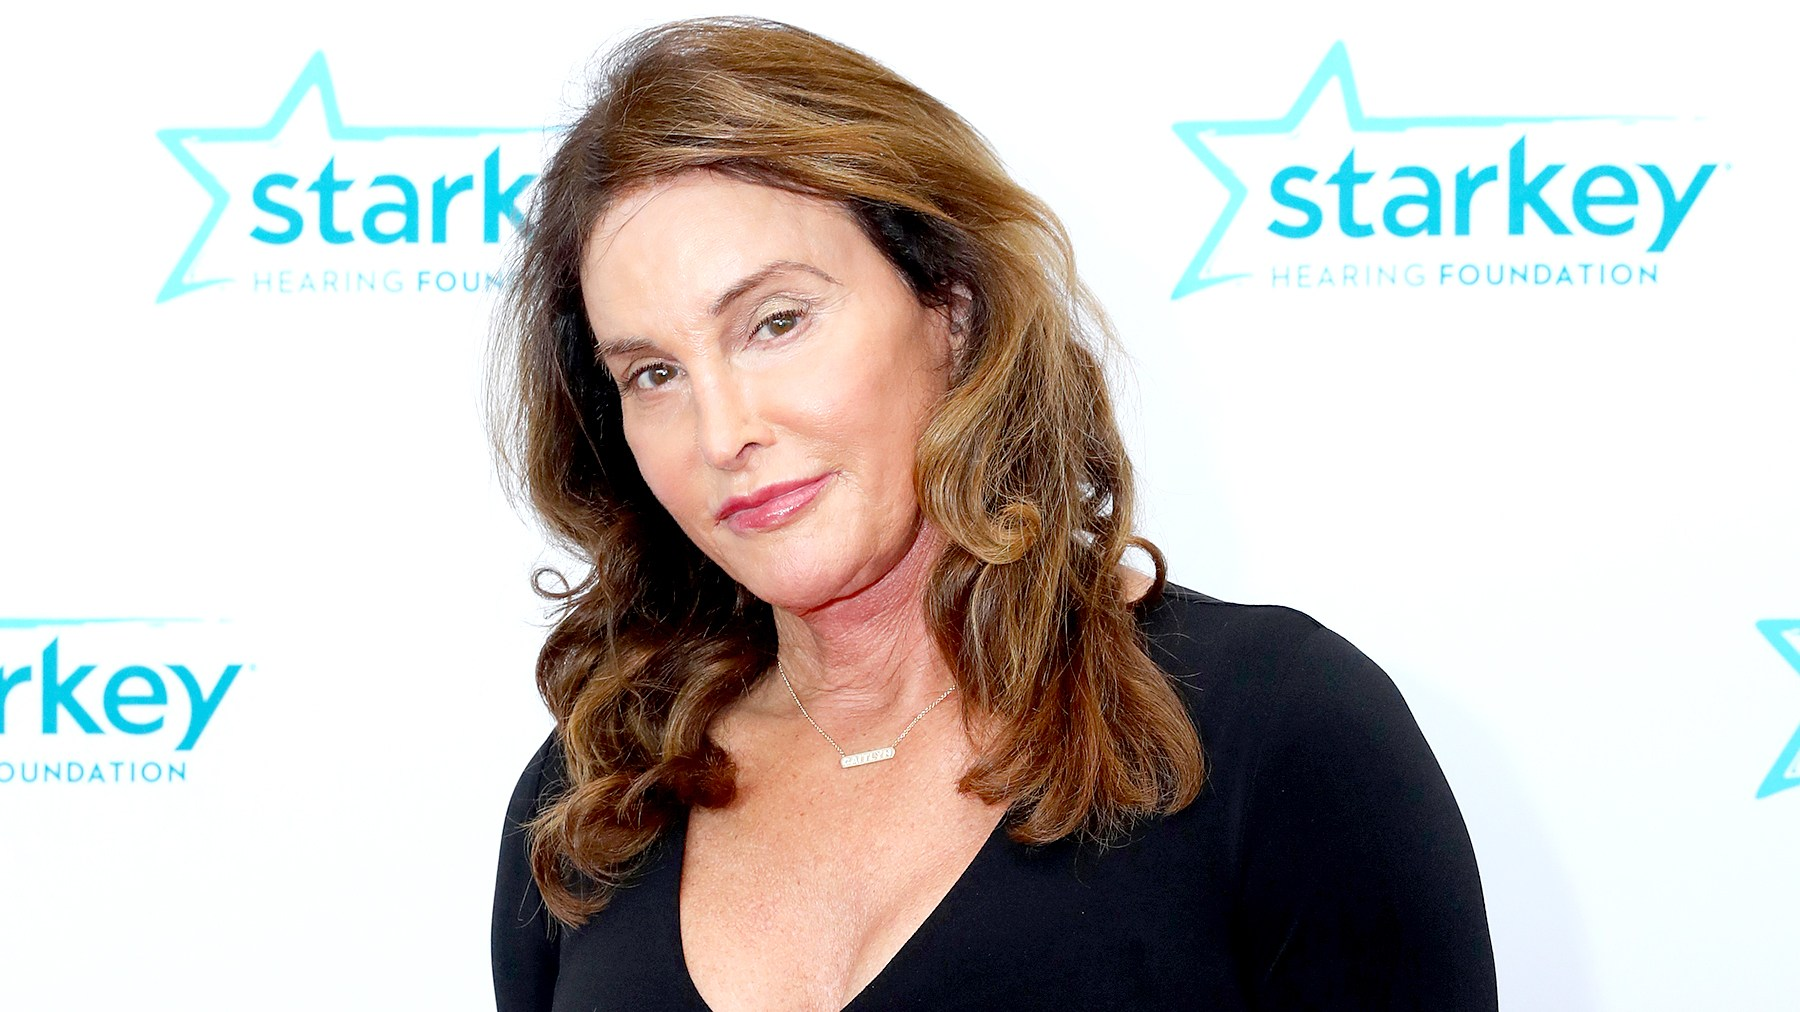 Caitlyn Jenner walks the red carpet at the 2017 Starkey Hearing Foundation So the World May Hear Awards Gala at the Saint Paul RiverCentre on July 16, 2017 in St. Paul, Minnesota.